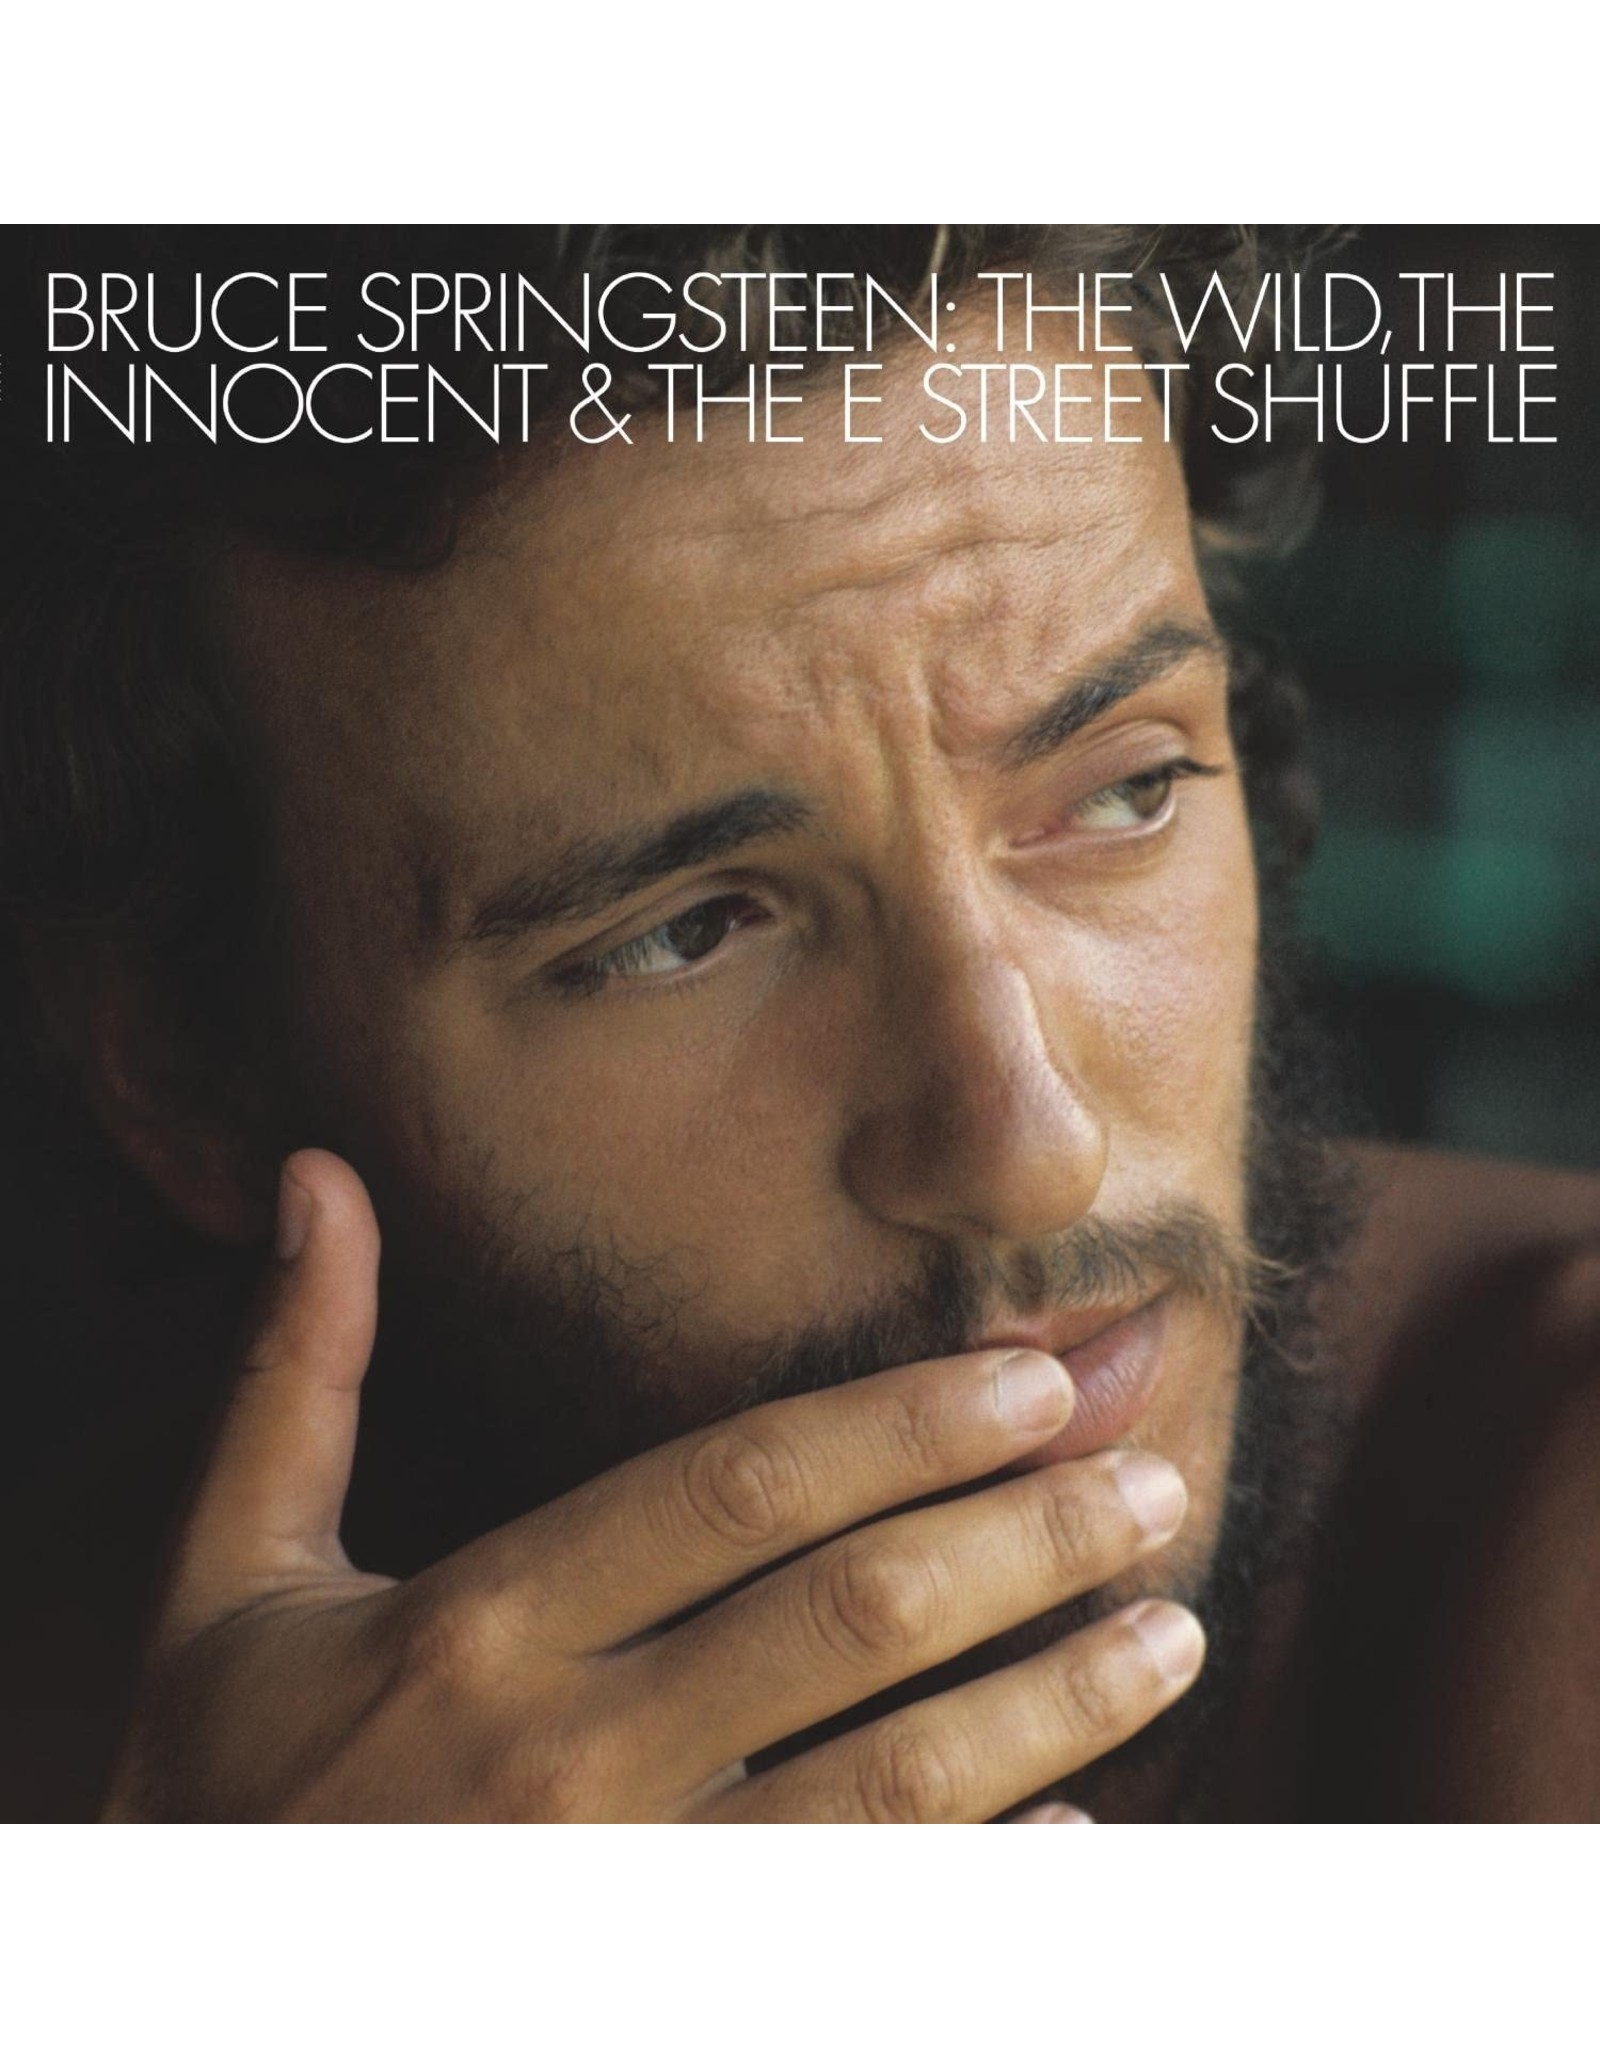 Bruce Springsteen - The Wild, The Innocent, & The E Street Shuffle